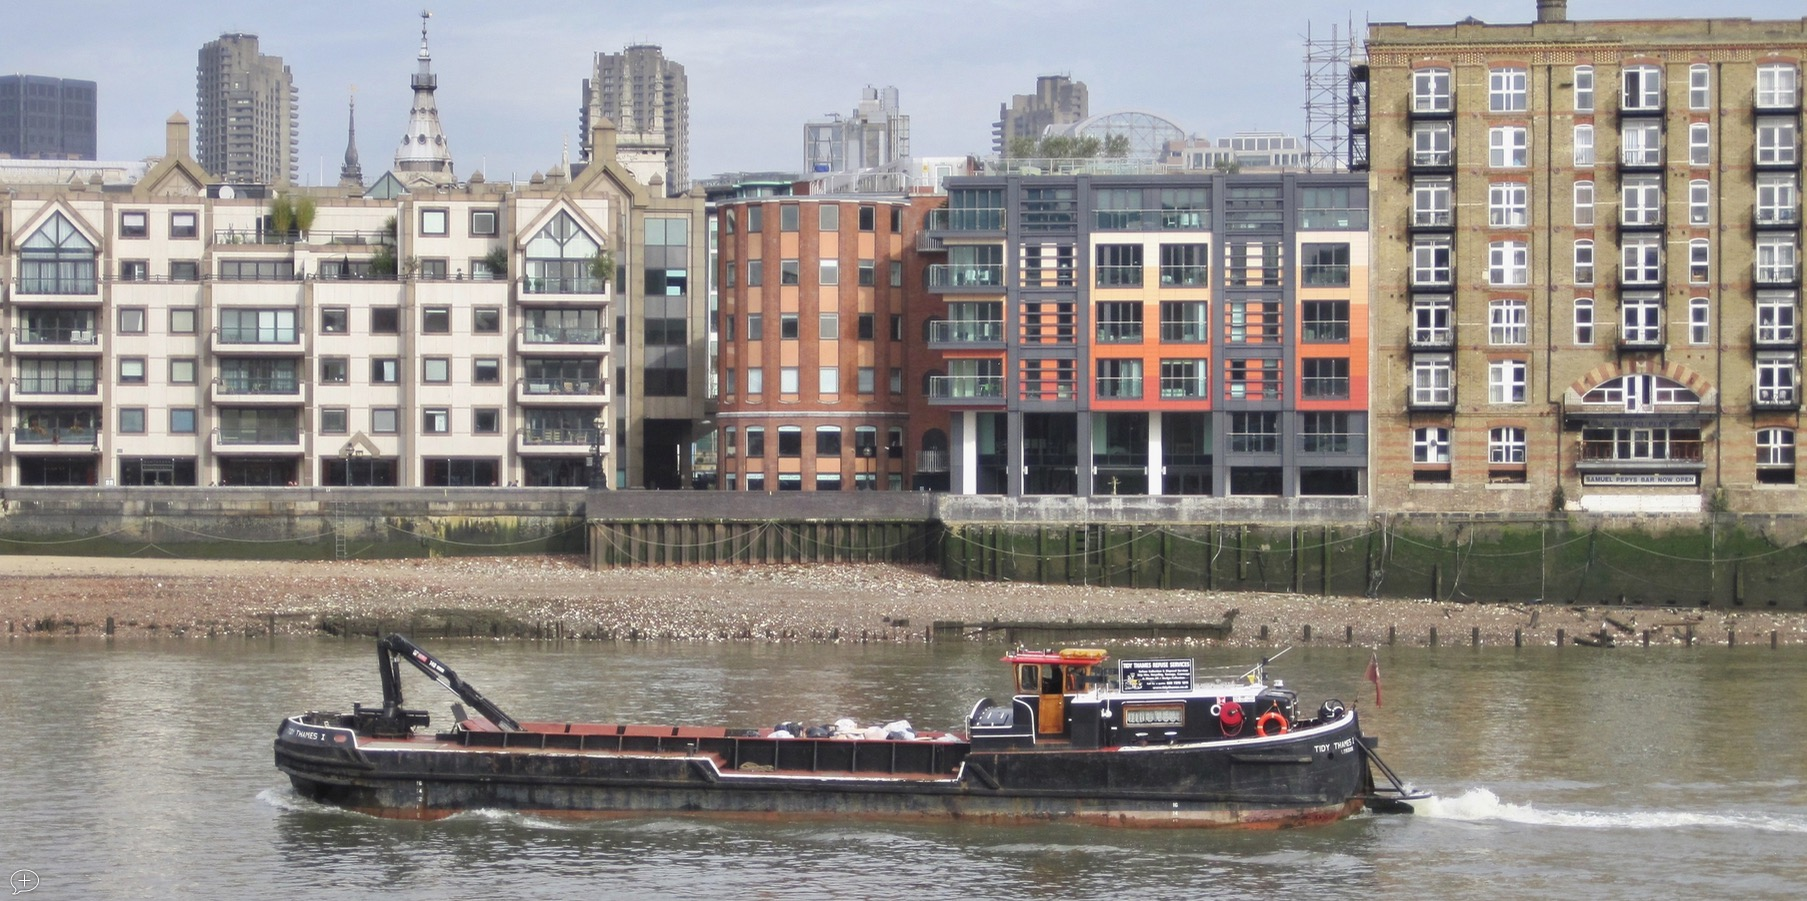 Barge on the River Thames in London, UK . ©2011 Sean Walmsley